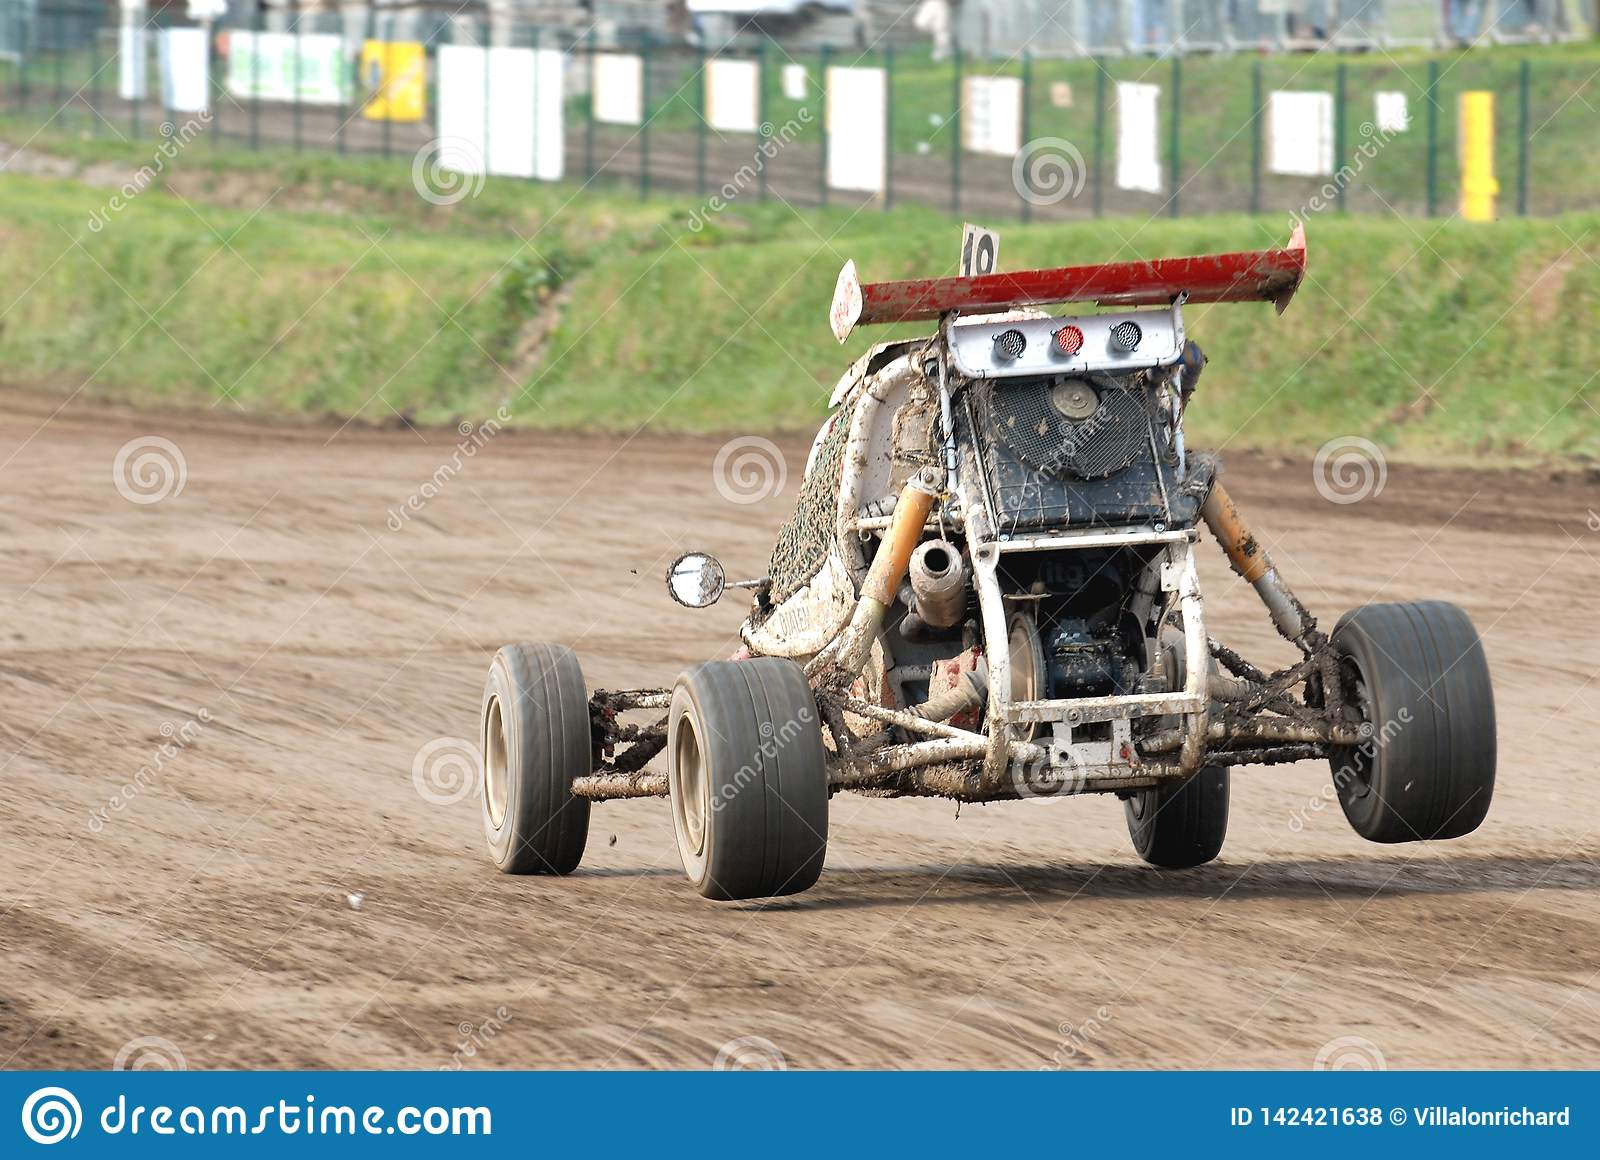 Race Of Cars On A Dirt Track Stock Photo Image Of Dirt Race 142421638